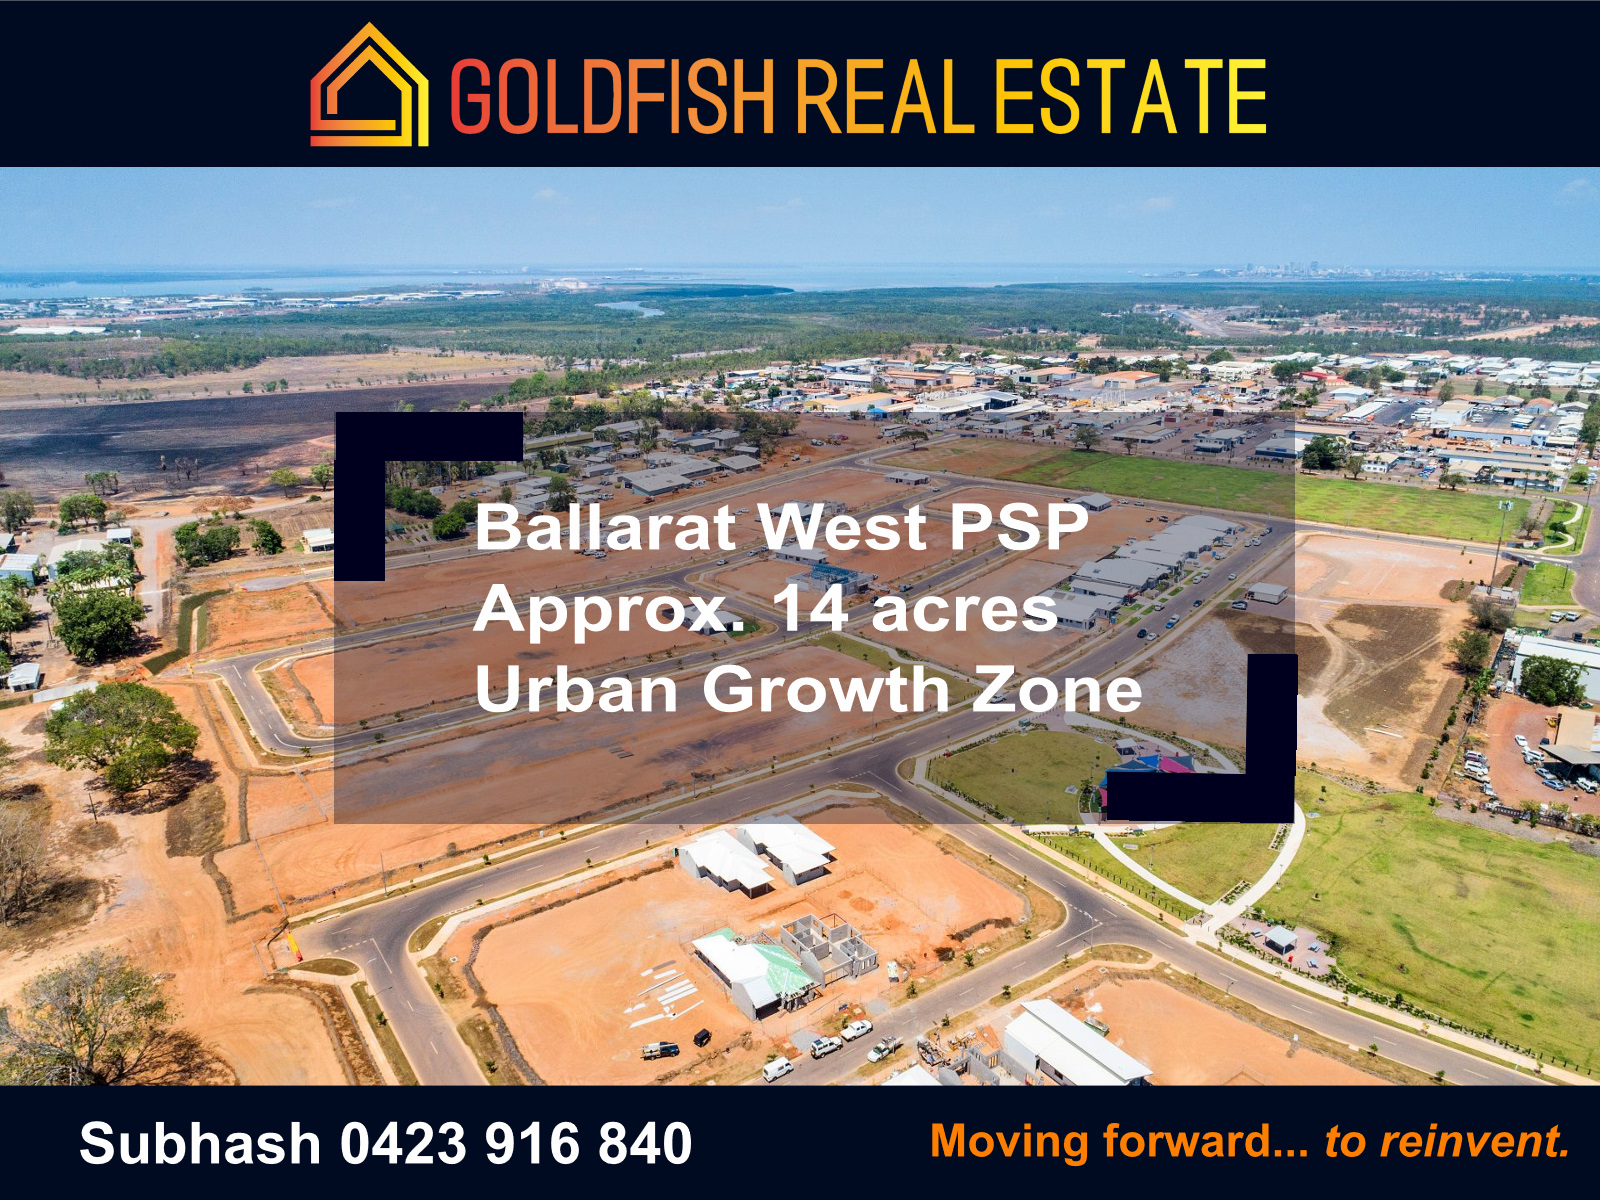 BLUECHIP INVESTMENT - RESIDENTIAL DEVELOPMENT SITE - APPROVED PSP